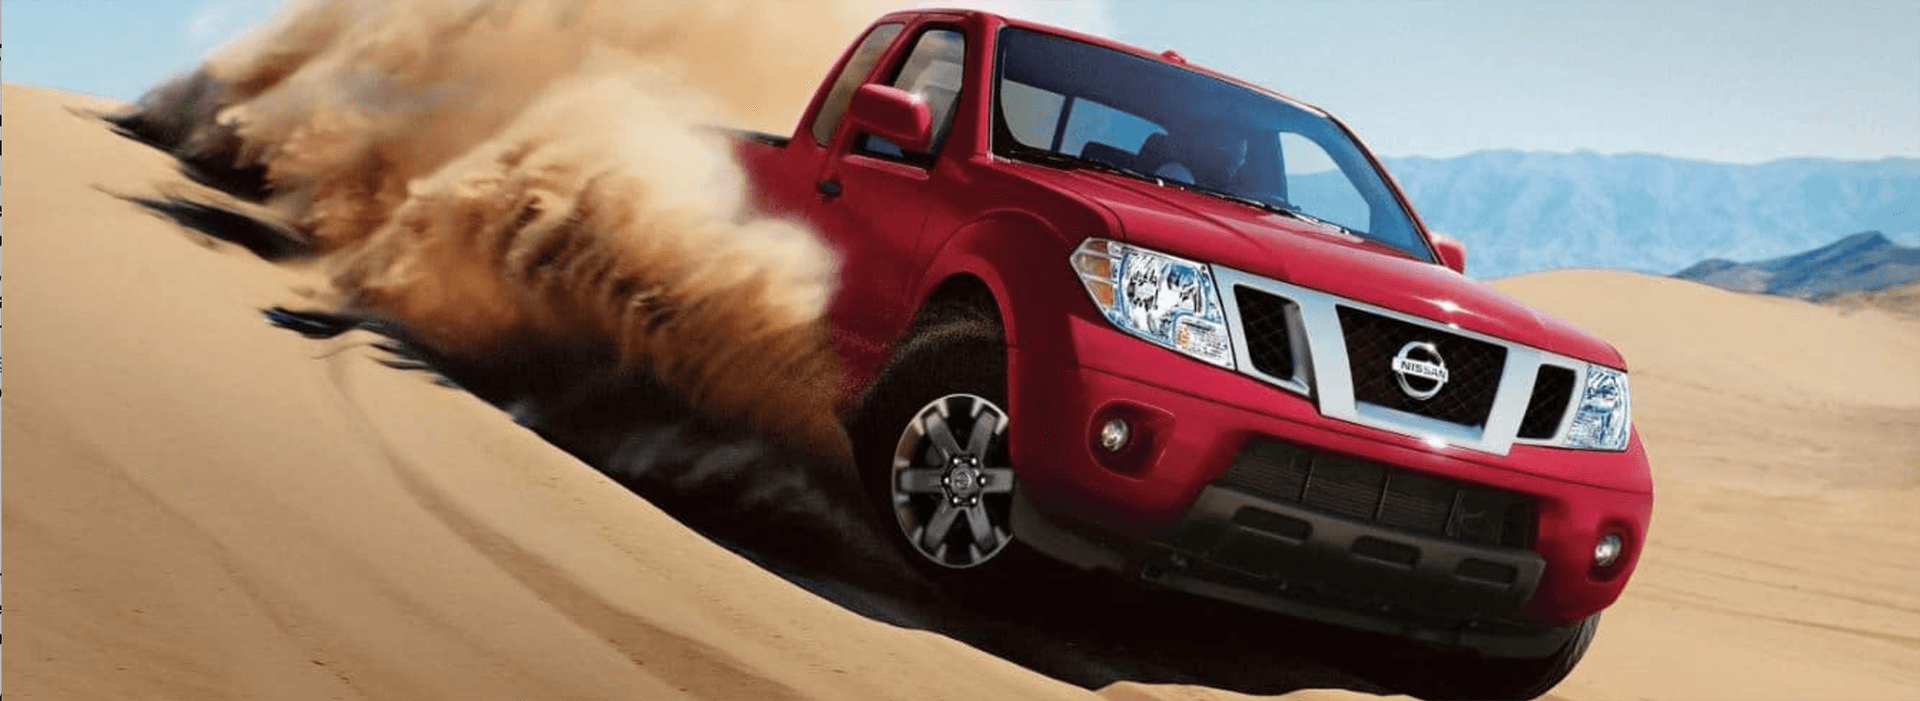 New 2021 Nissan Frontier Lifestyle